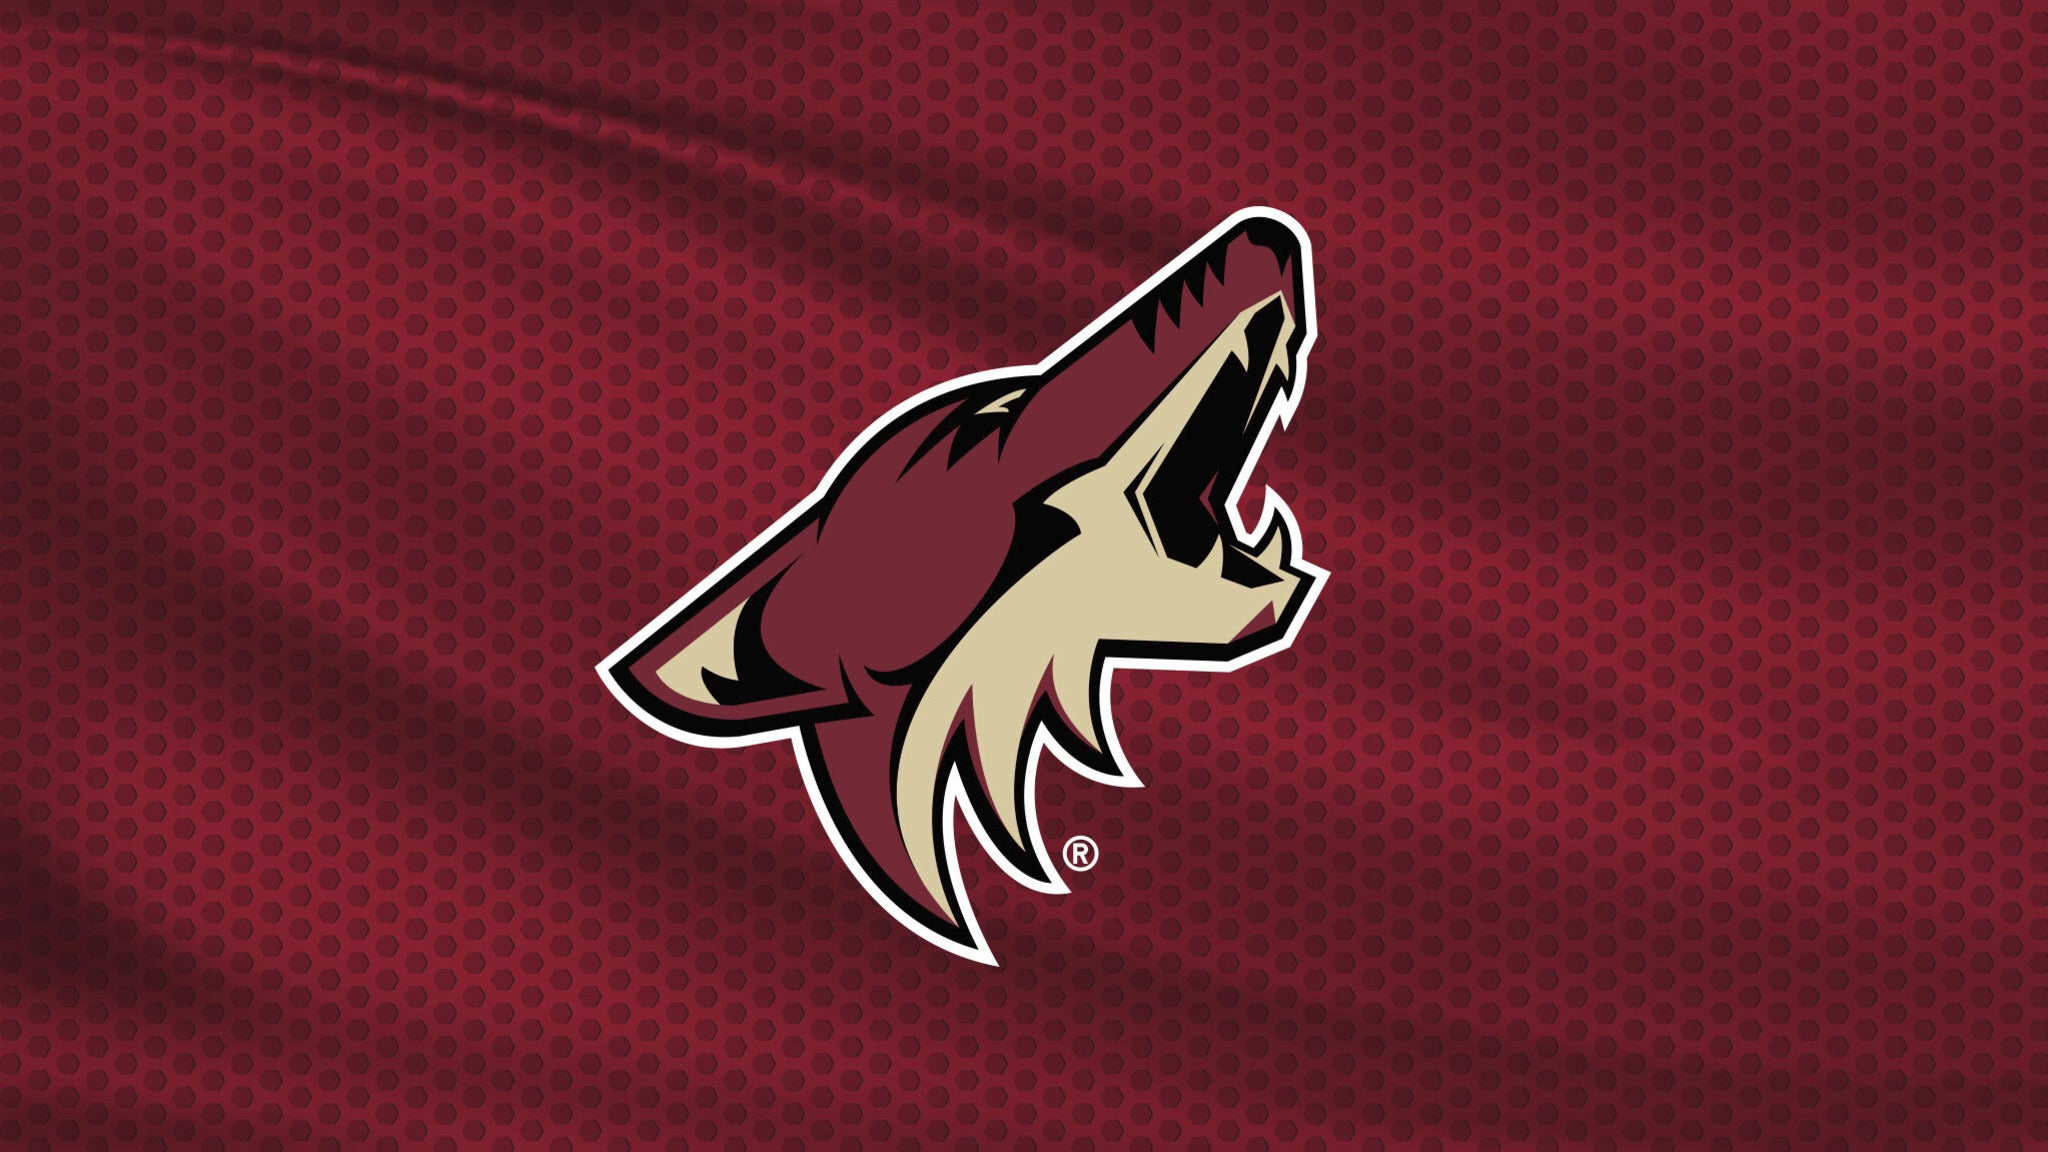 Arizona Coyotes vs. Los Angeles Kings at Gila River Arena - Glendale, AZ 85305